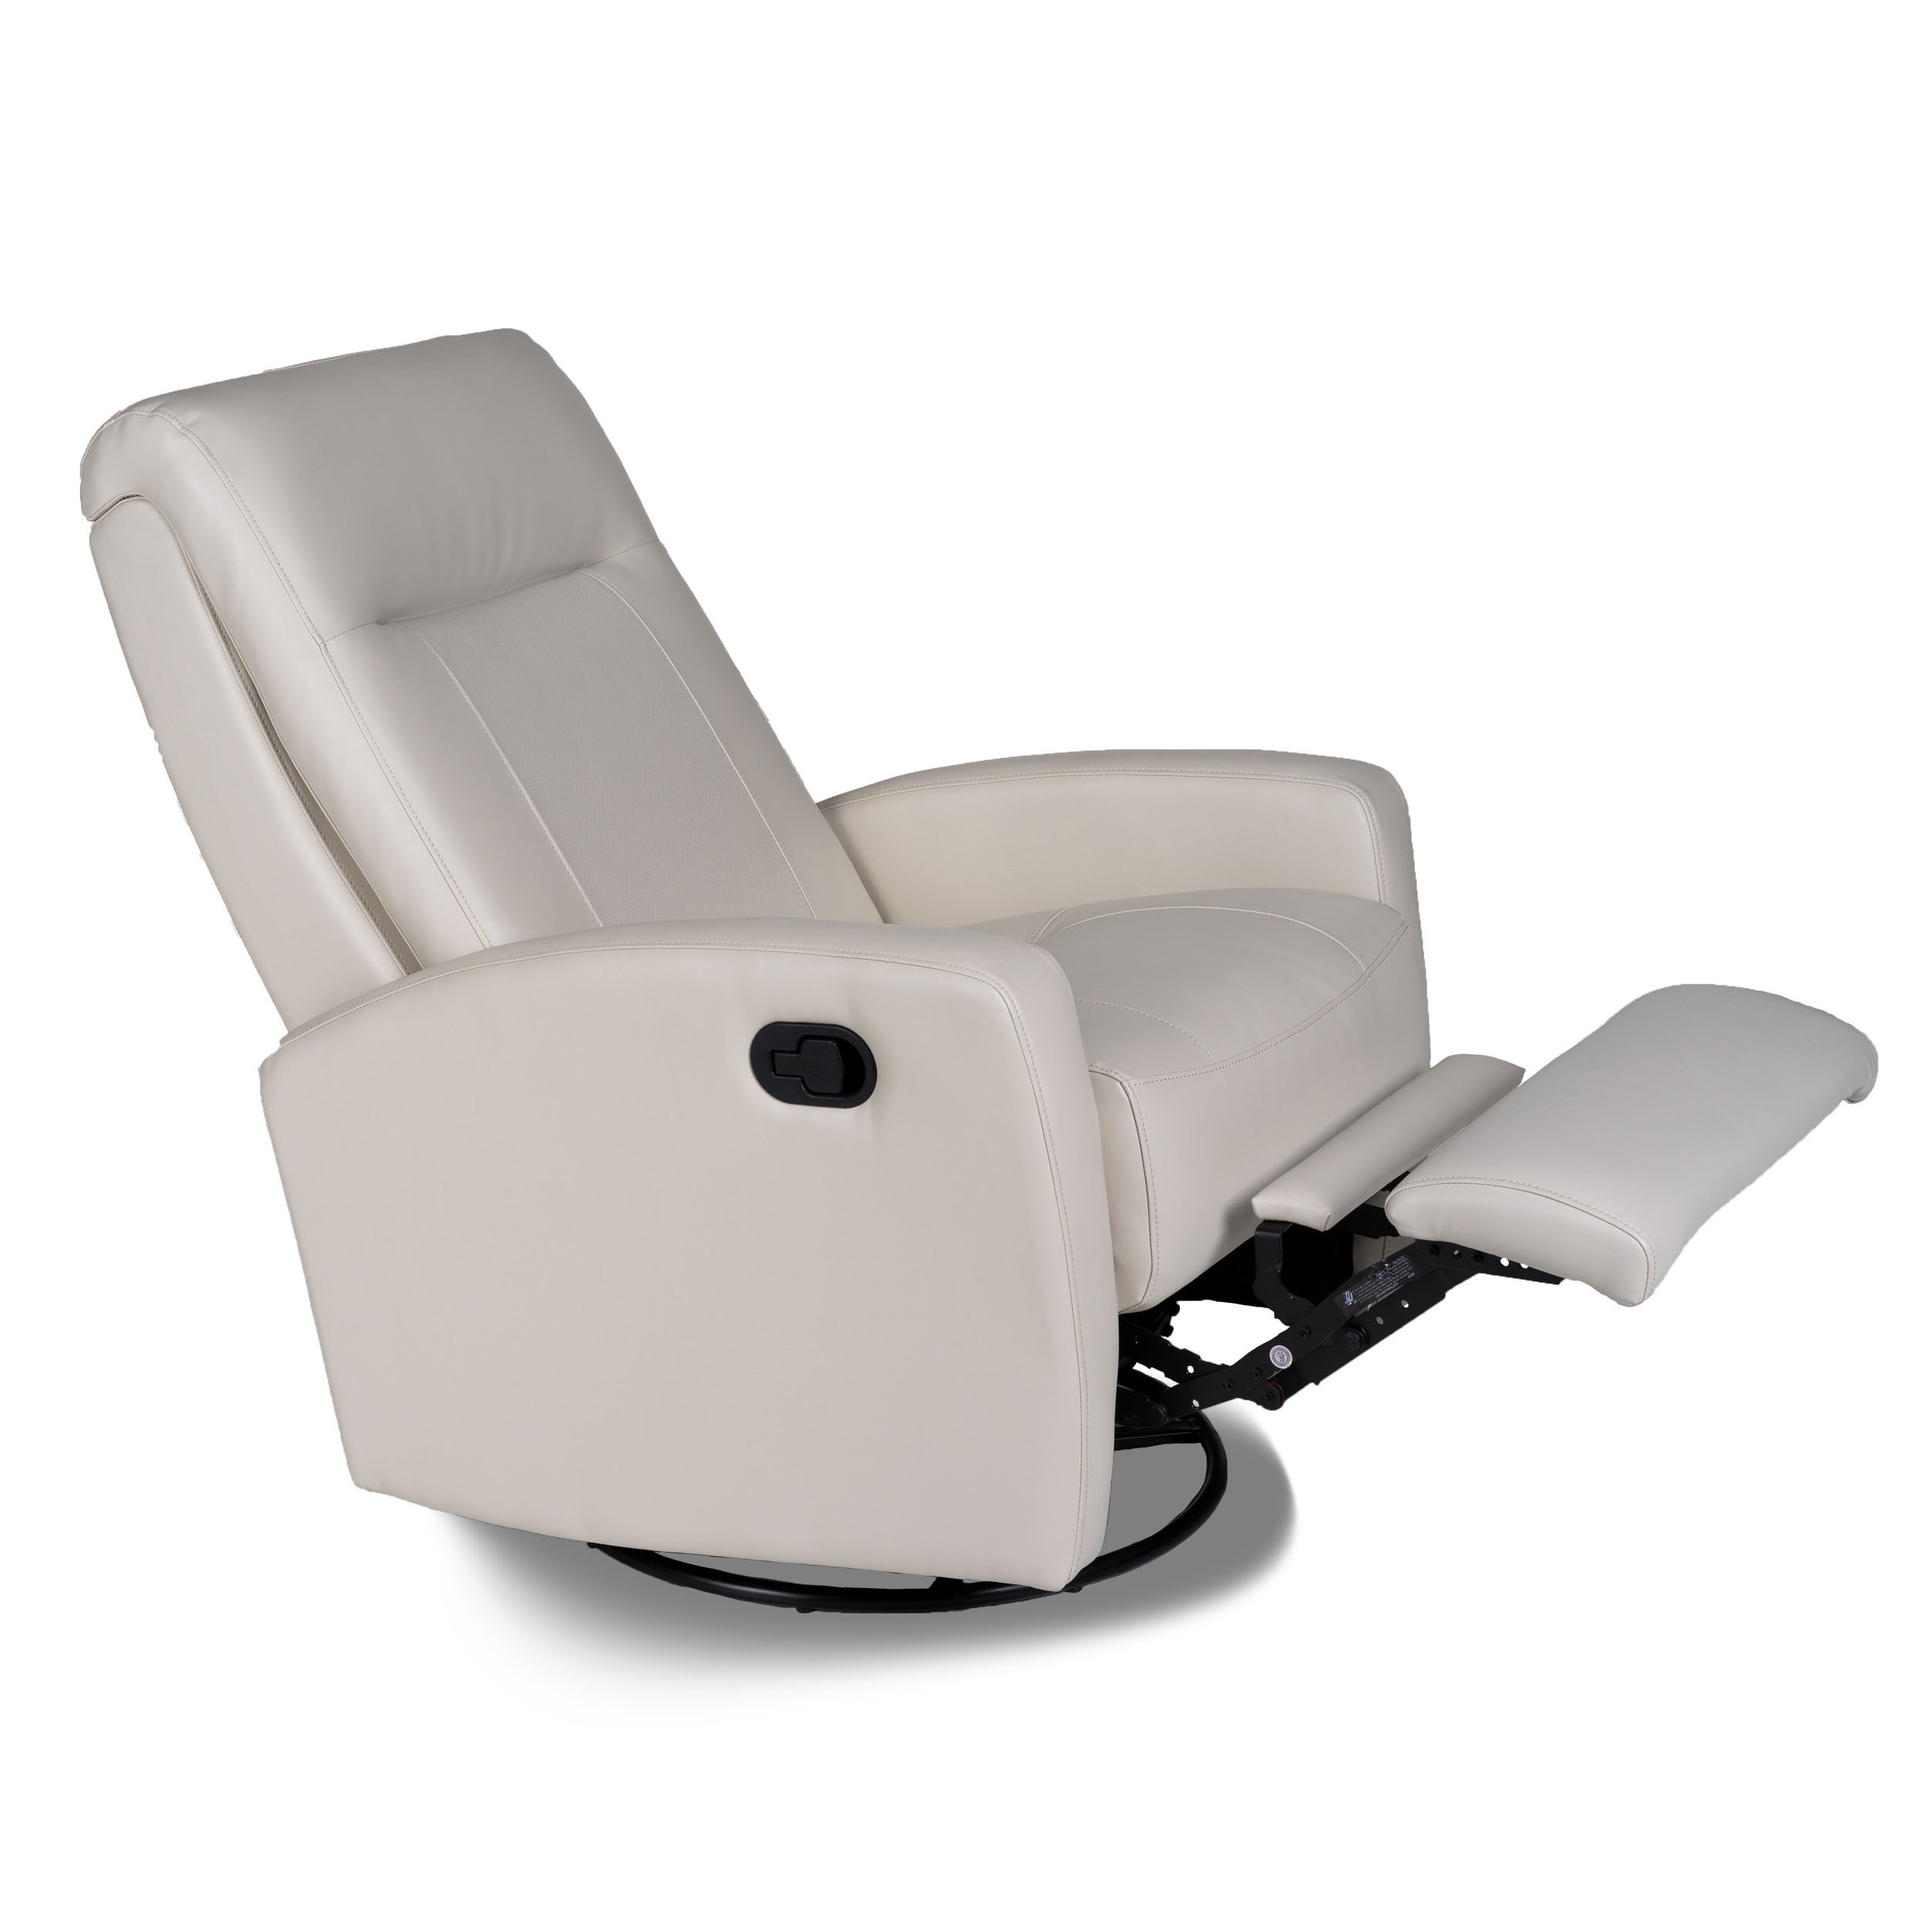 Rocker Glider Recliner | Babies R Us Nursing Chair | Glider Recliner